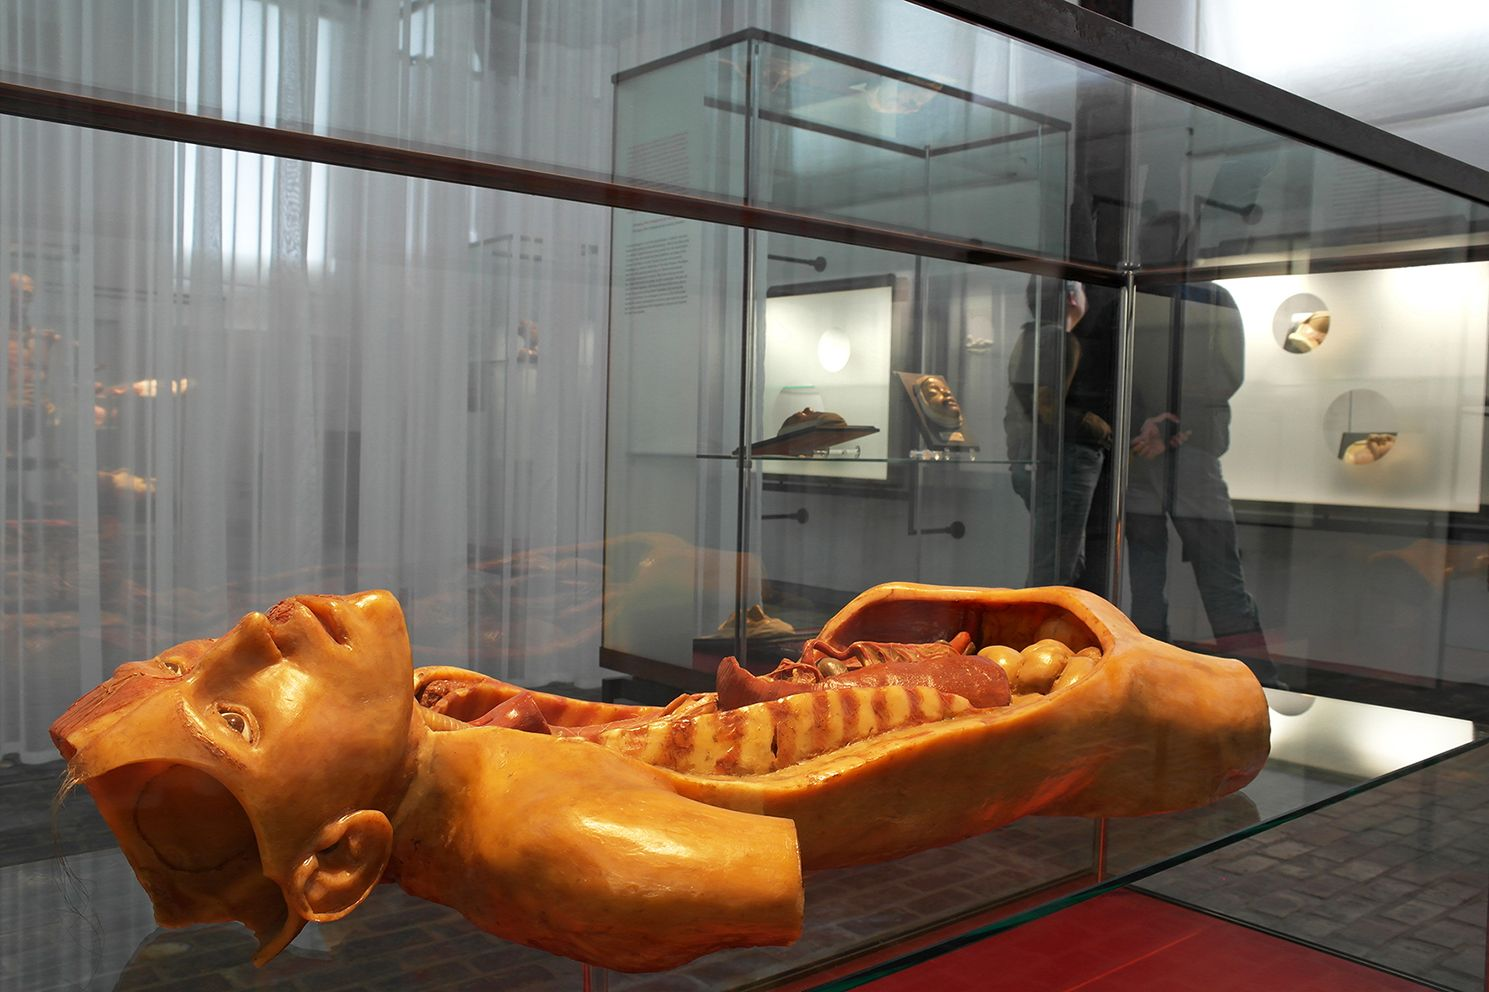 Tentoonstelling/exhibition 'Amazing Models', Museum Boerhaave, over anatomische modellen/anatomical models.